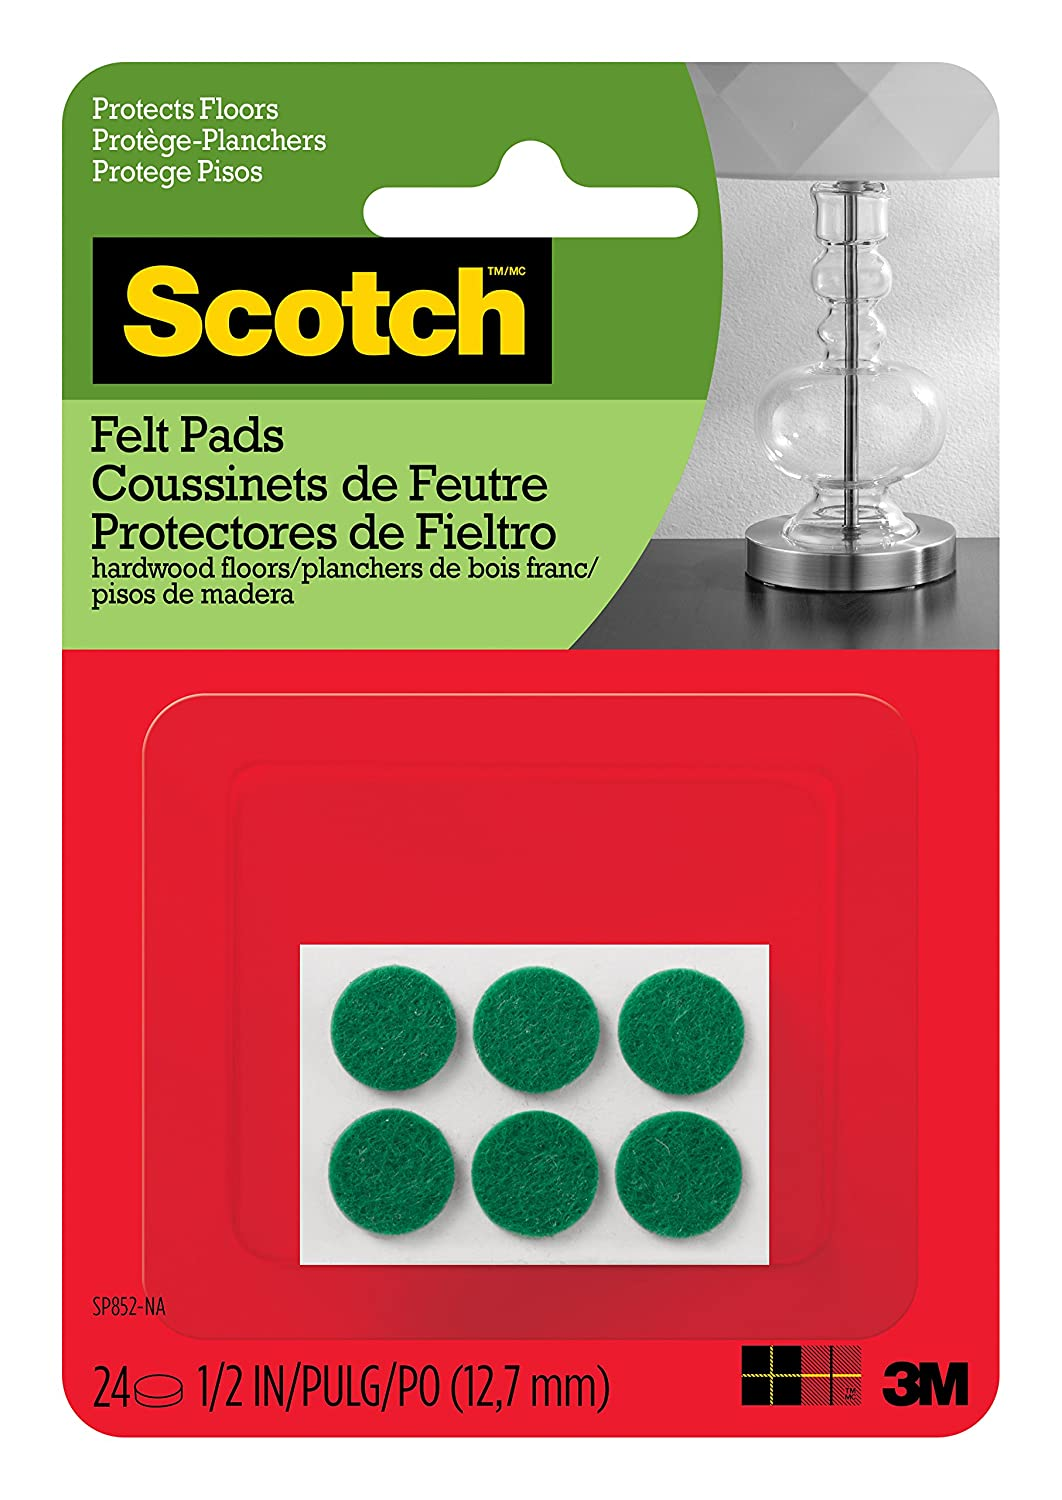 Scotch Brand Felt Pads, Premium Quality, By 3M, Protectors, Round, 1/2 in. Diameter, Green, 24/Pack